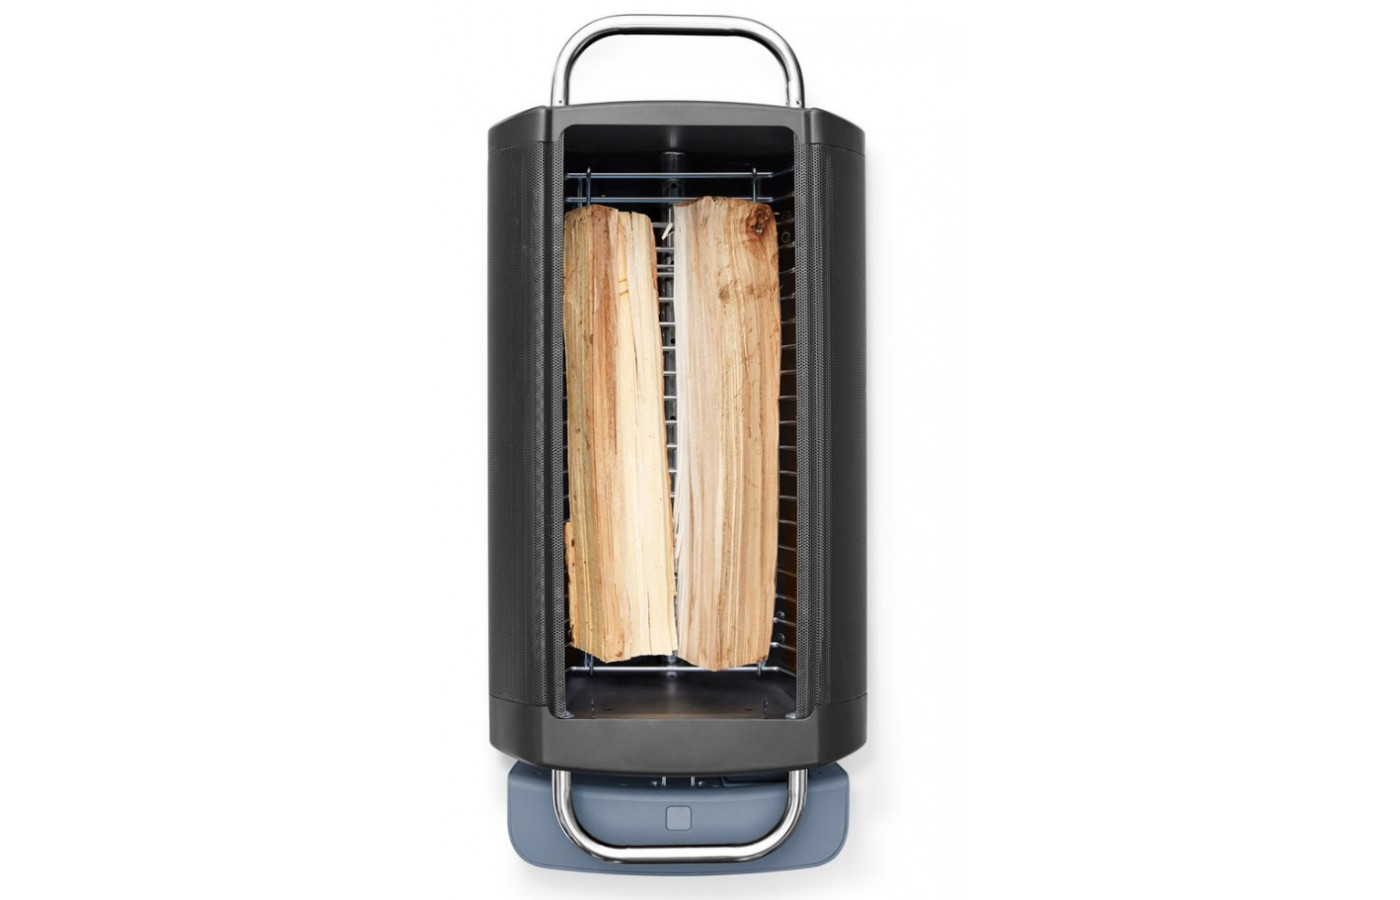 It's better to use cut logs for wood burning over sticks and branches with this grill.